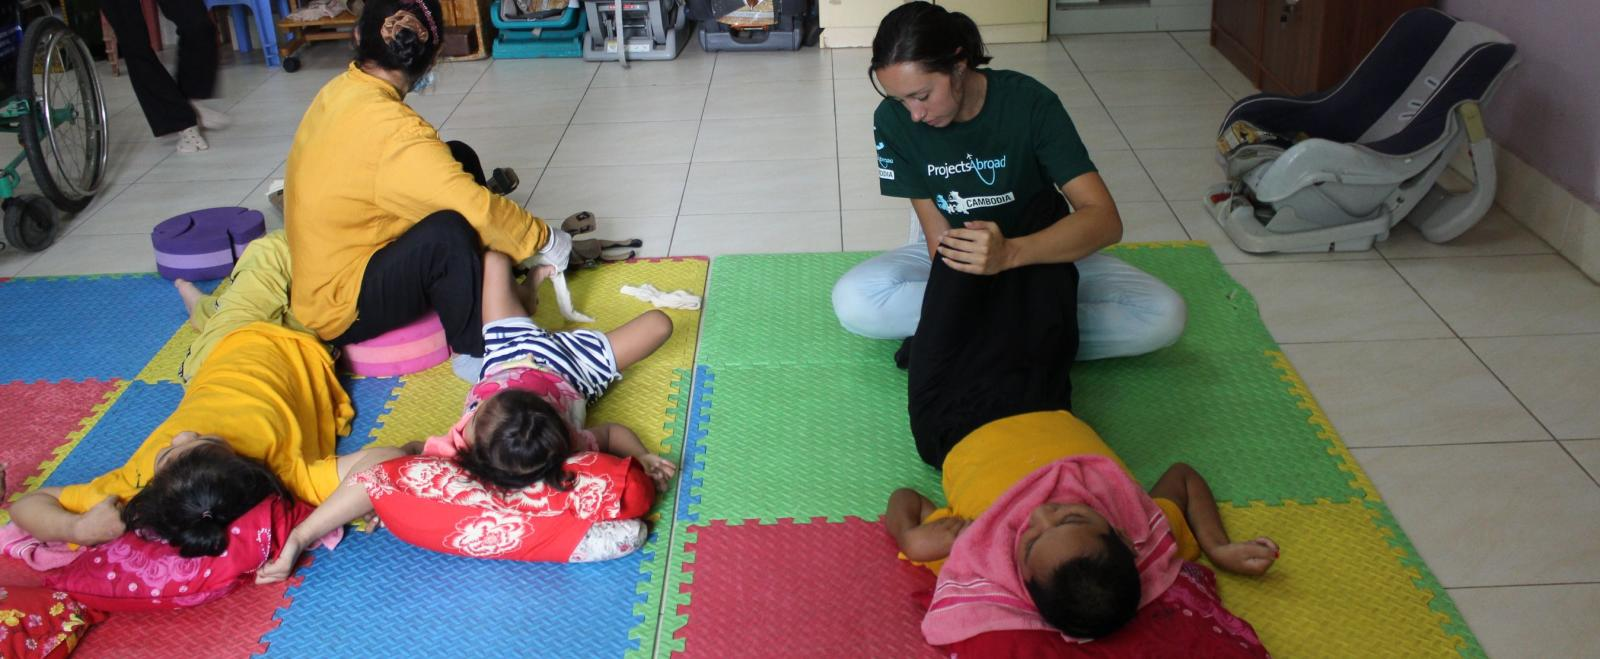 A Physiotherapy intern works with a young patient at a rehabilitation centre in Cambodia.